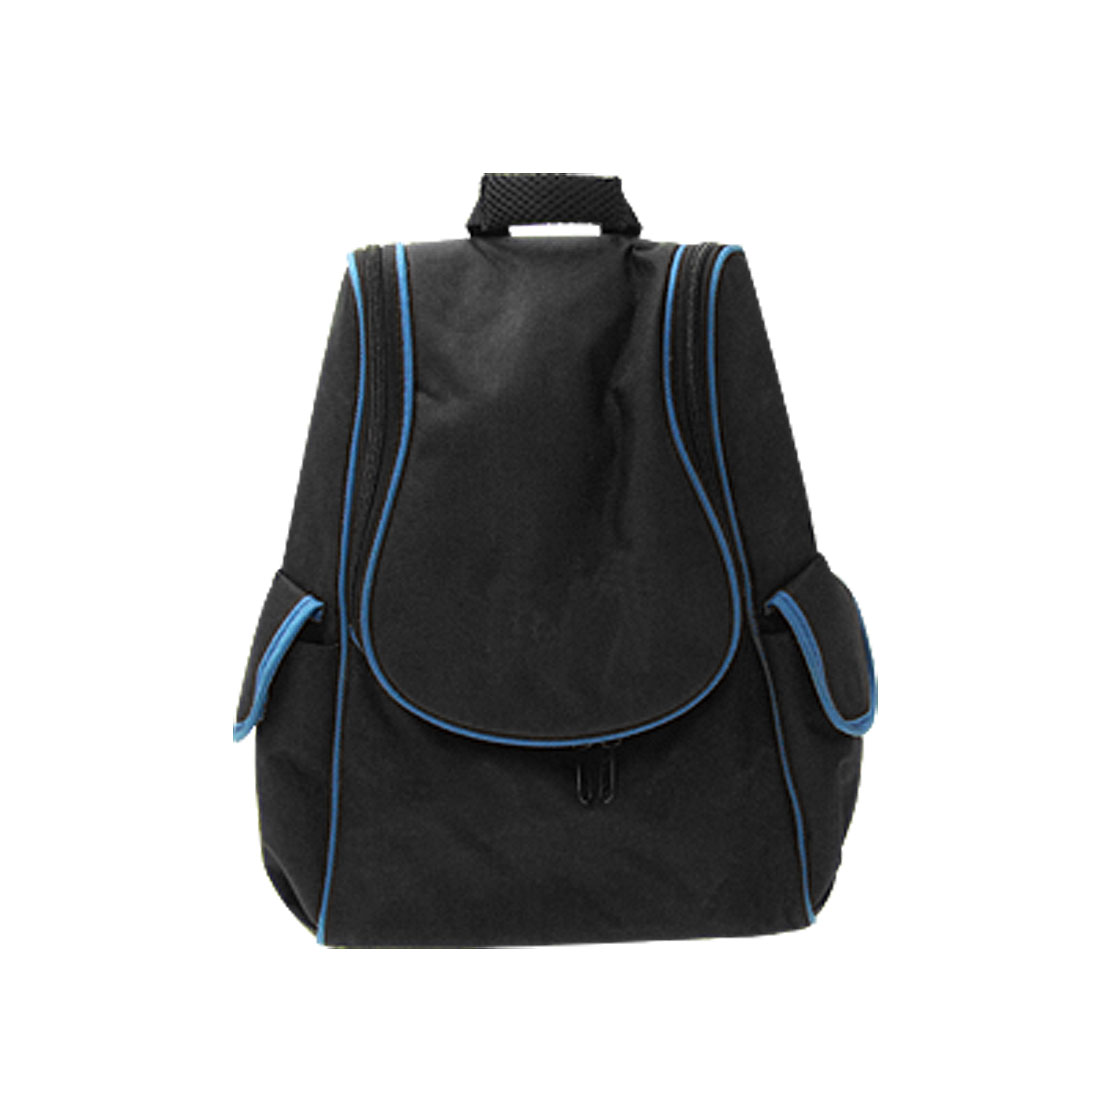 Cool Light Carrying Bag for All Nintendo Wii Accessories - Black